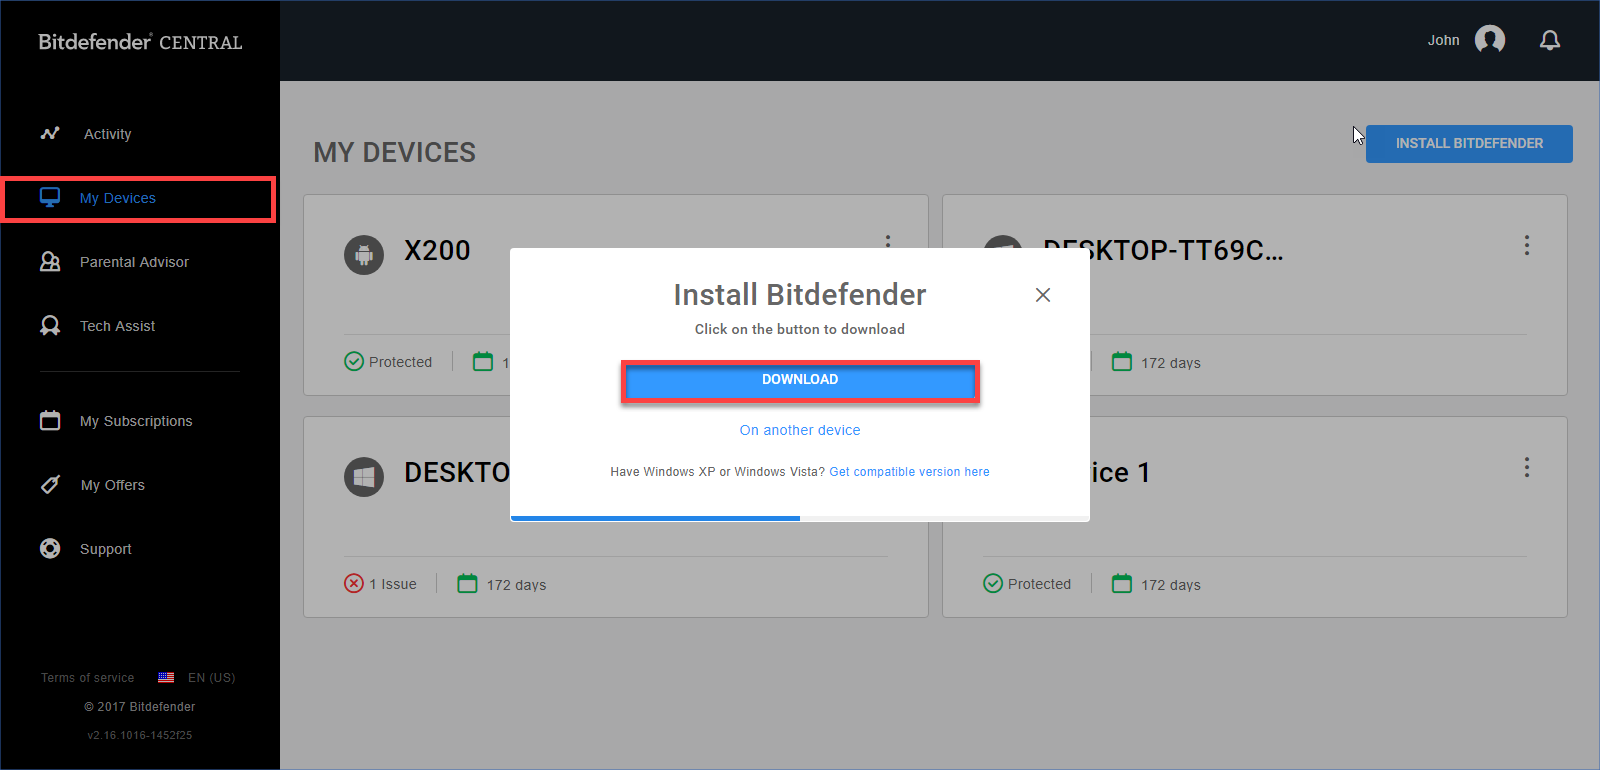 How to install the new Bitdefender Antivirus for Mac